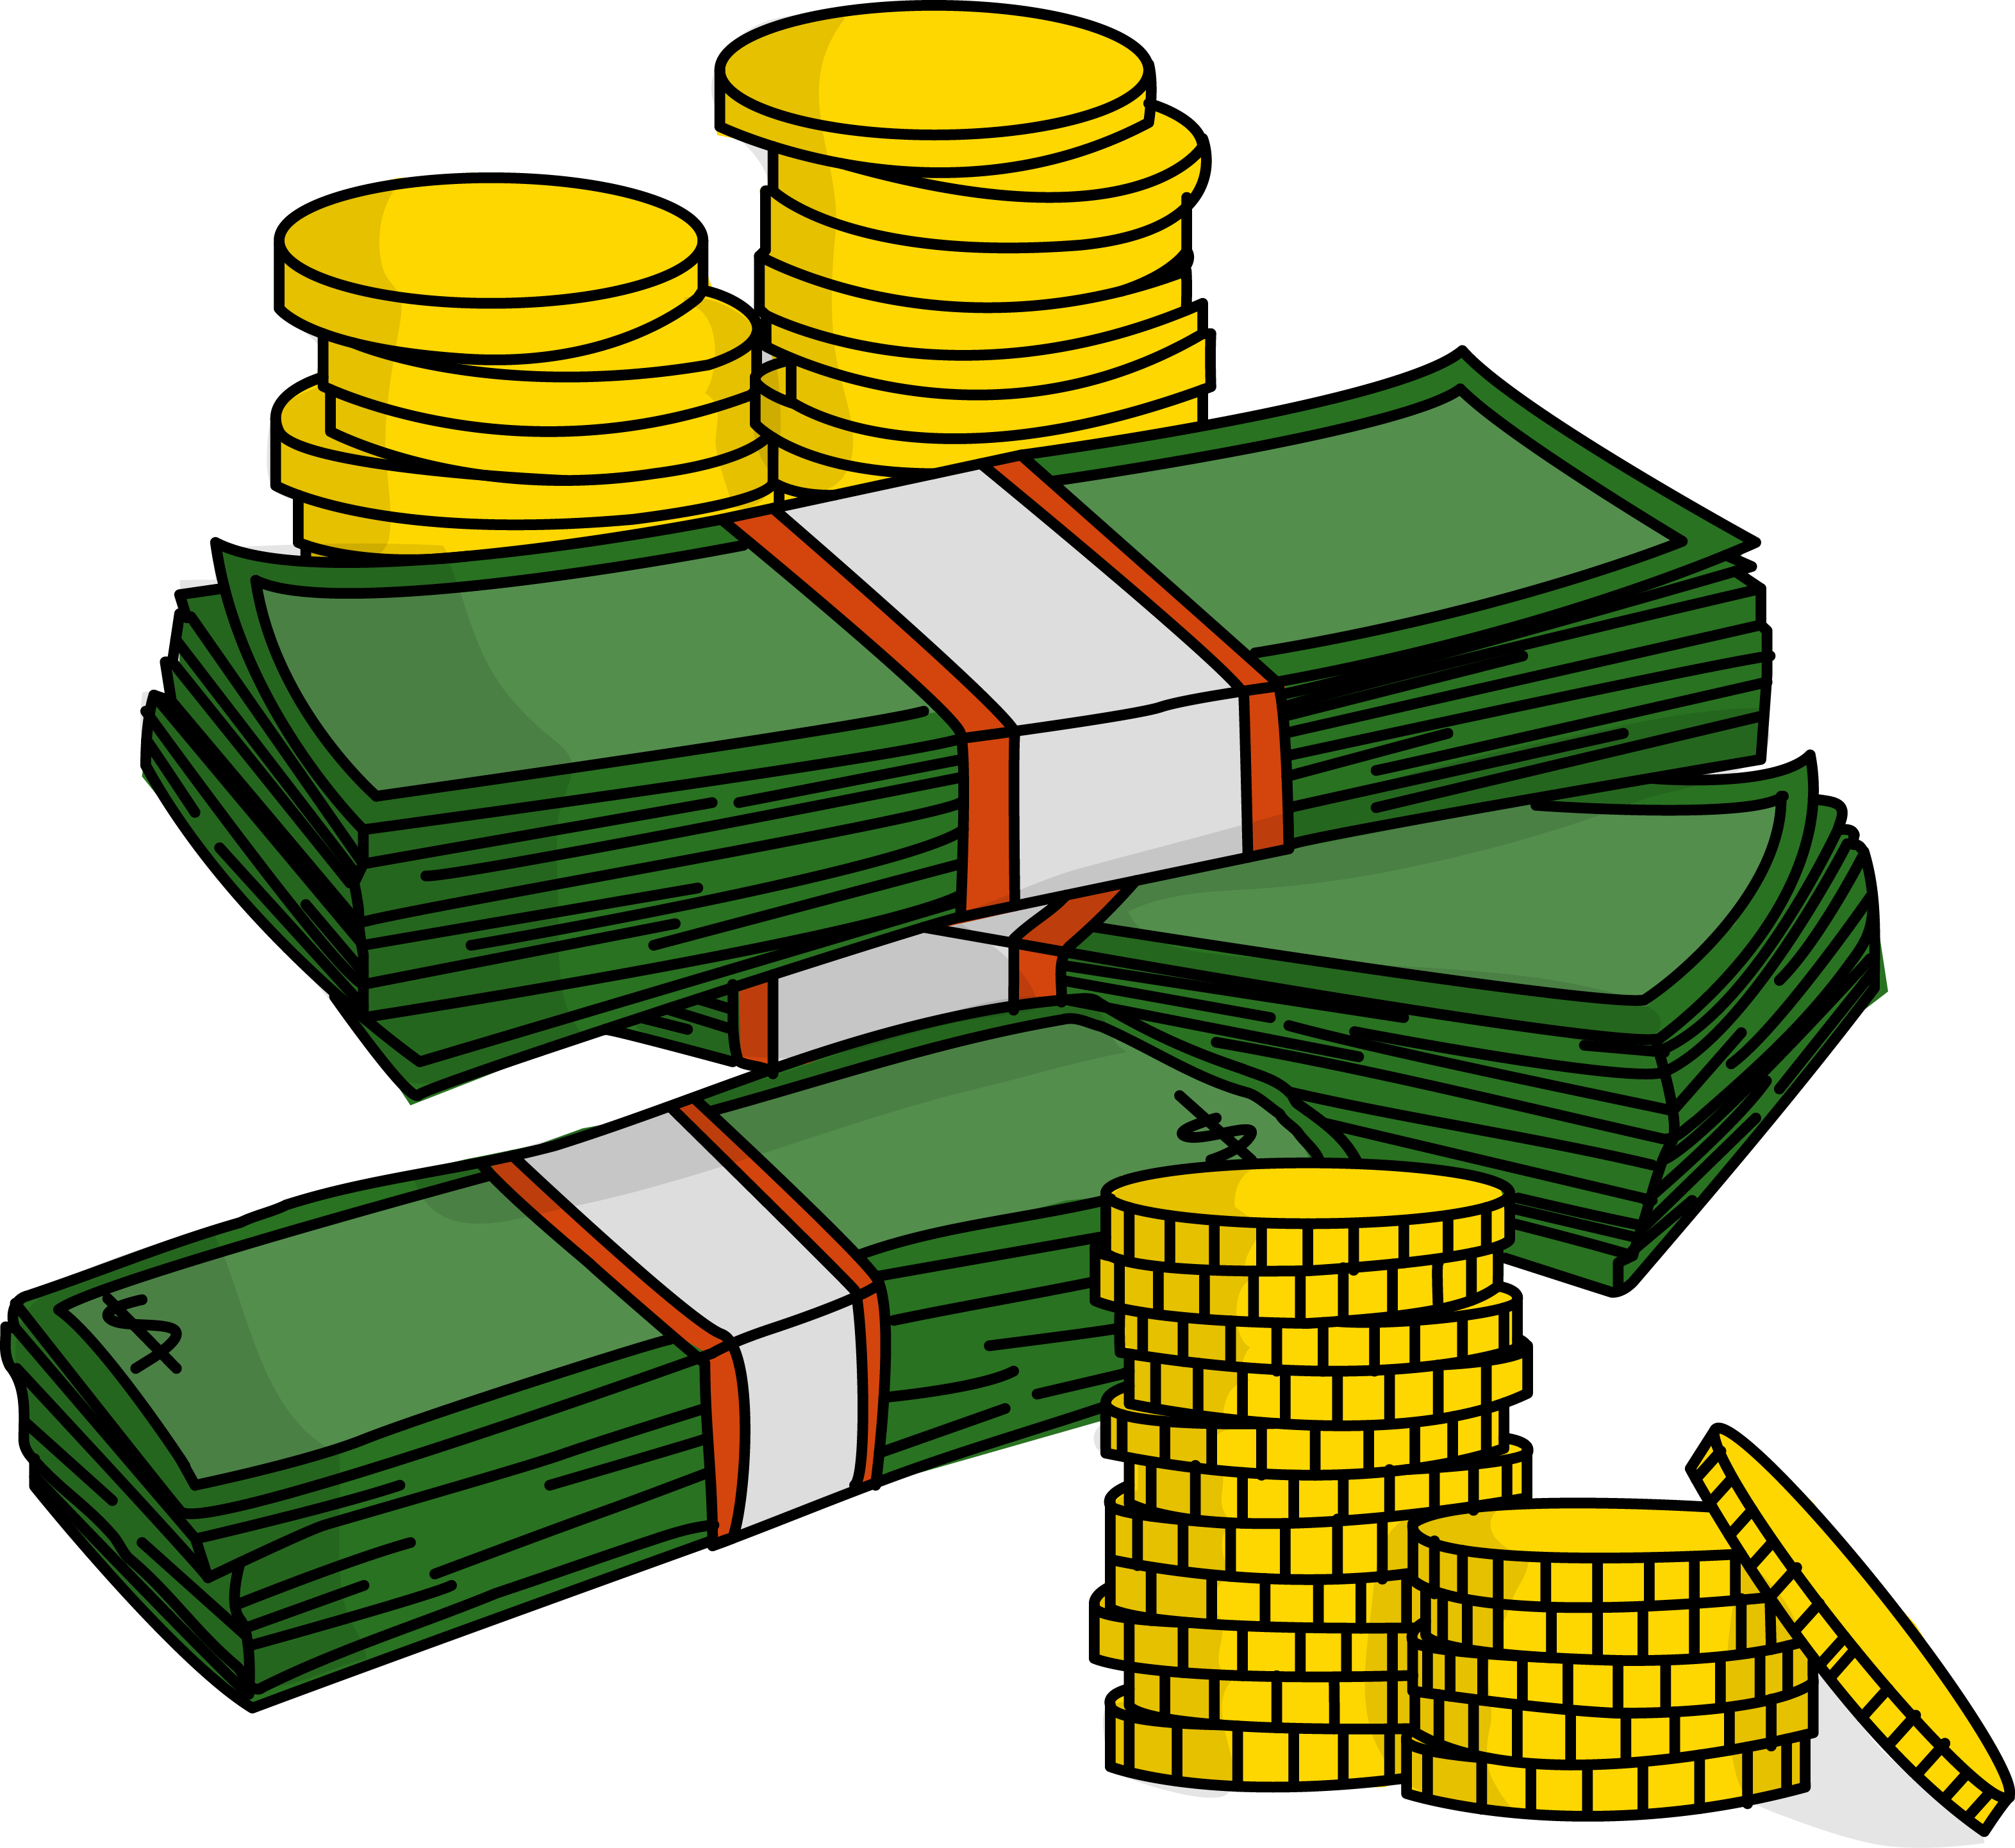 Free Stacks Of Money With Coins High Res-Free Stacks Of Money With Coins High Resolution Clip Art | All .-5